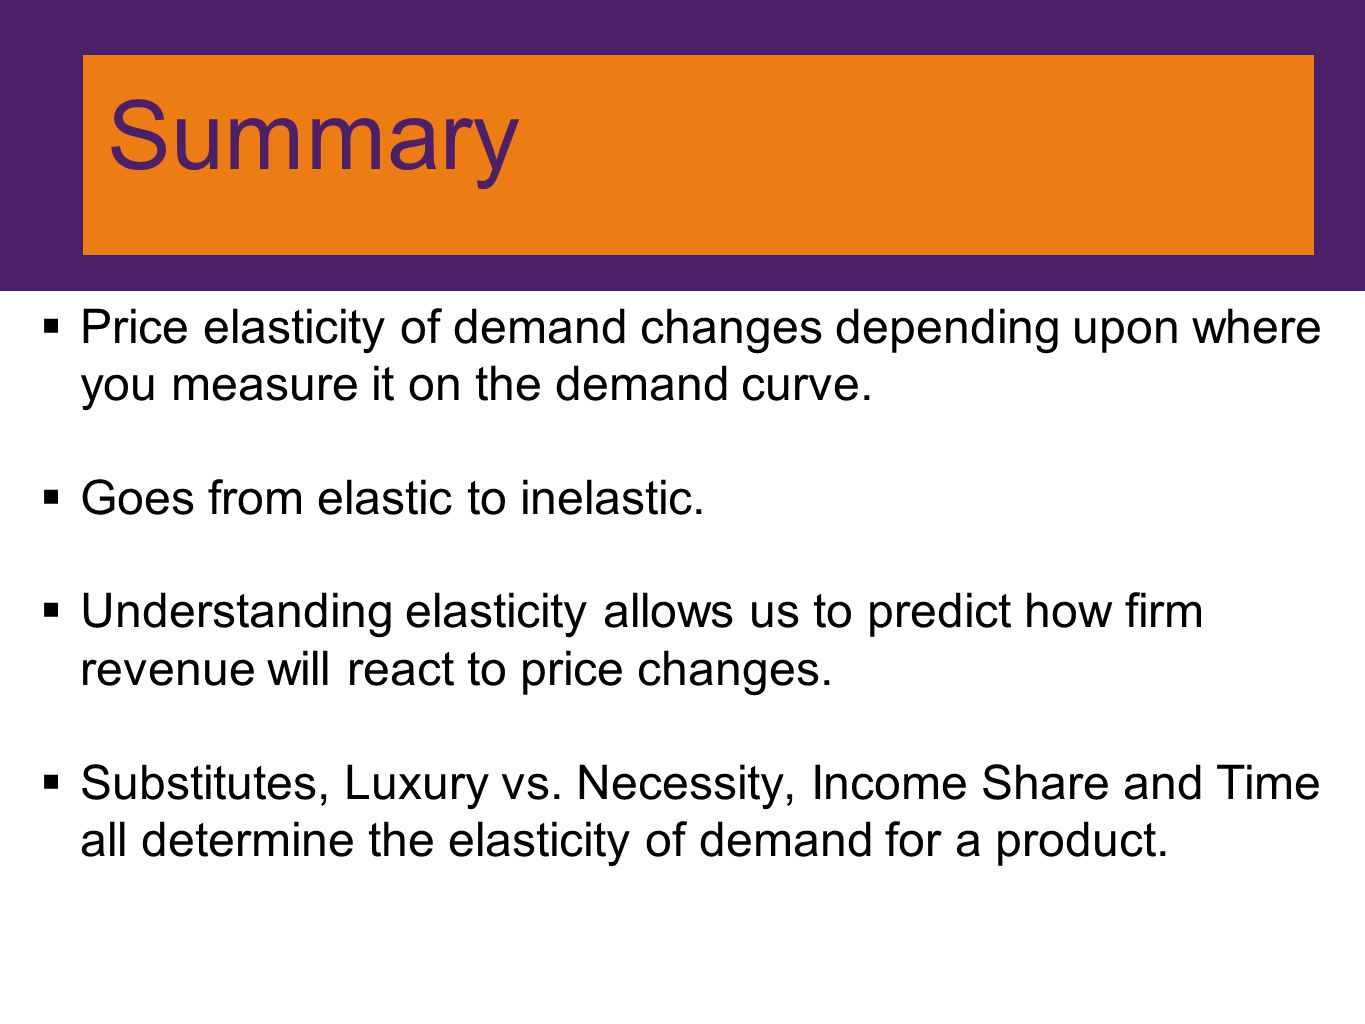 Summary Price elasticity of demand changes depending upon where you measure it on the demand curve.